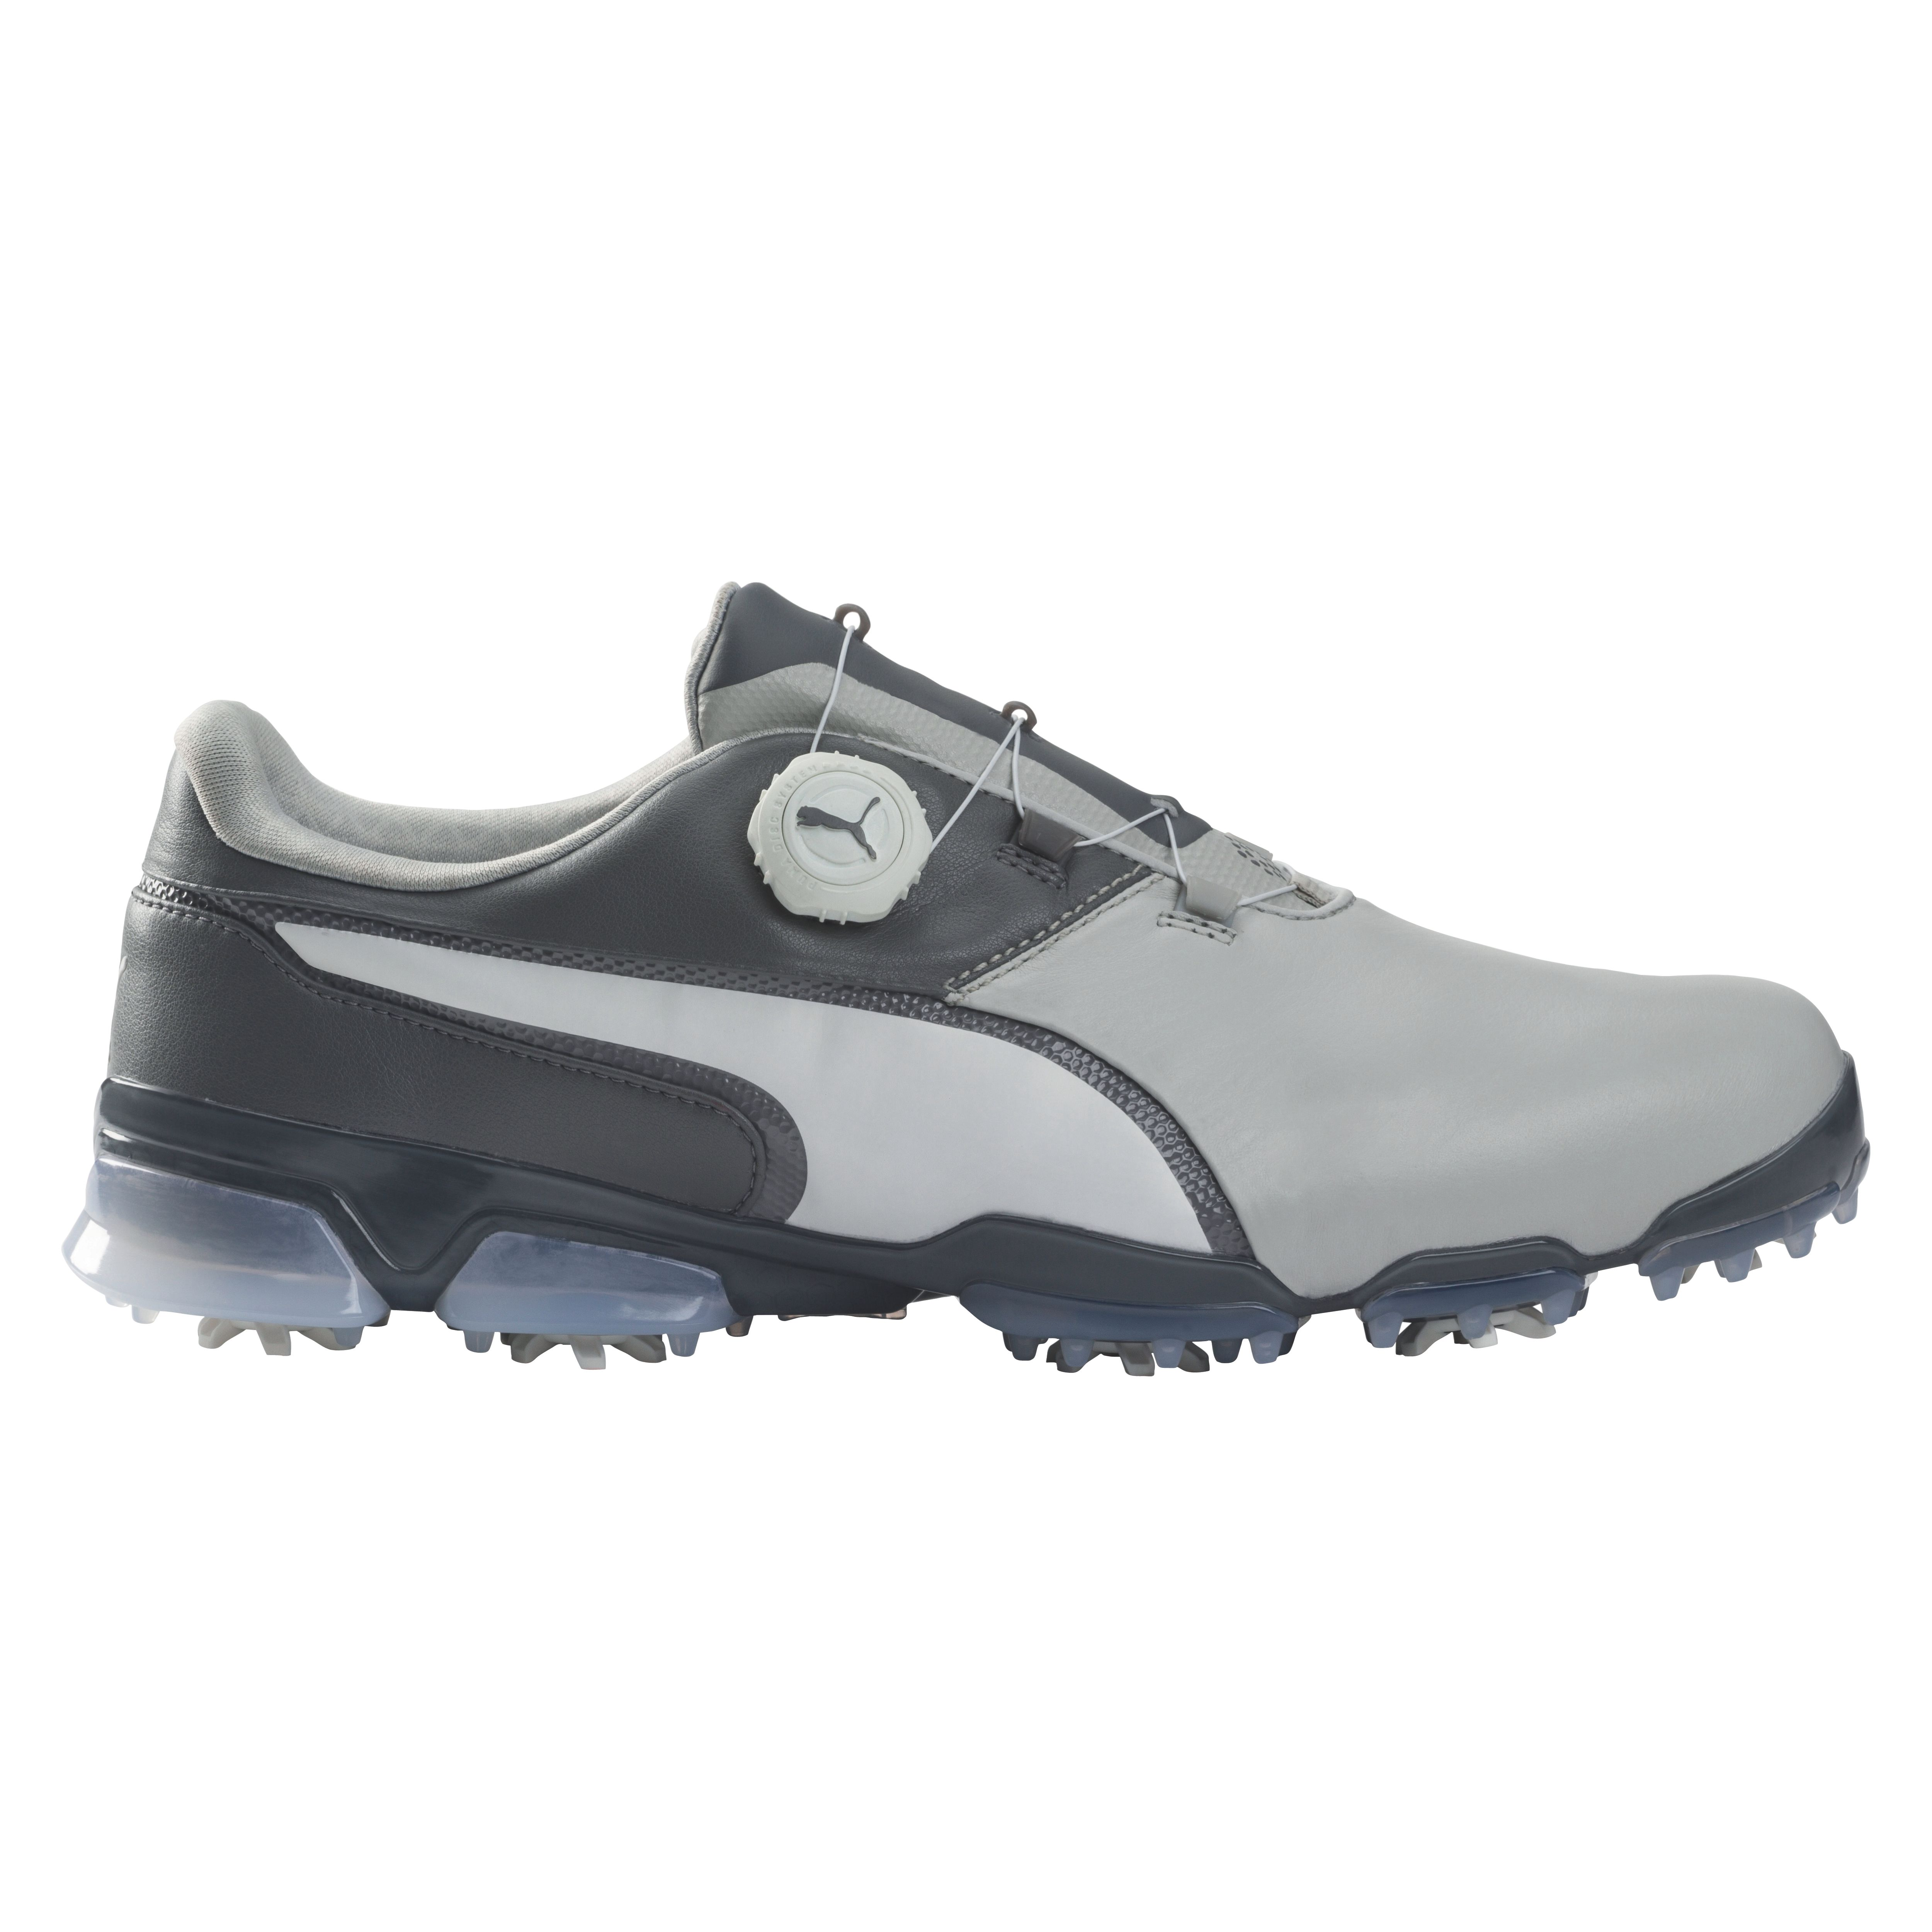 b0fd553c120 PUMA Ignite DISC Collection of Golf Shoes Preview - The Hackers ...